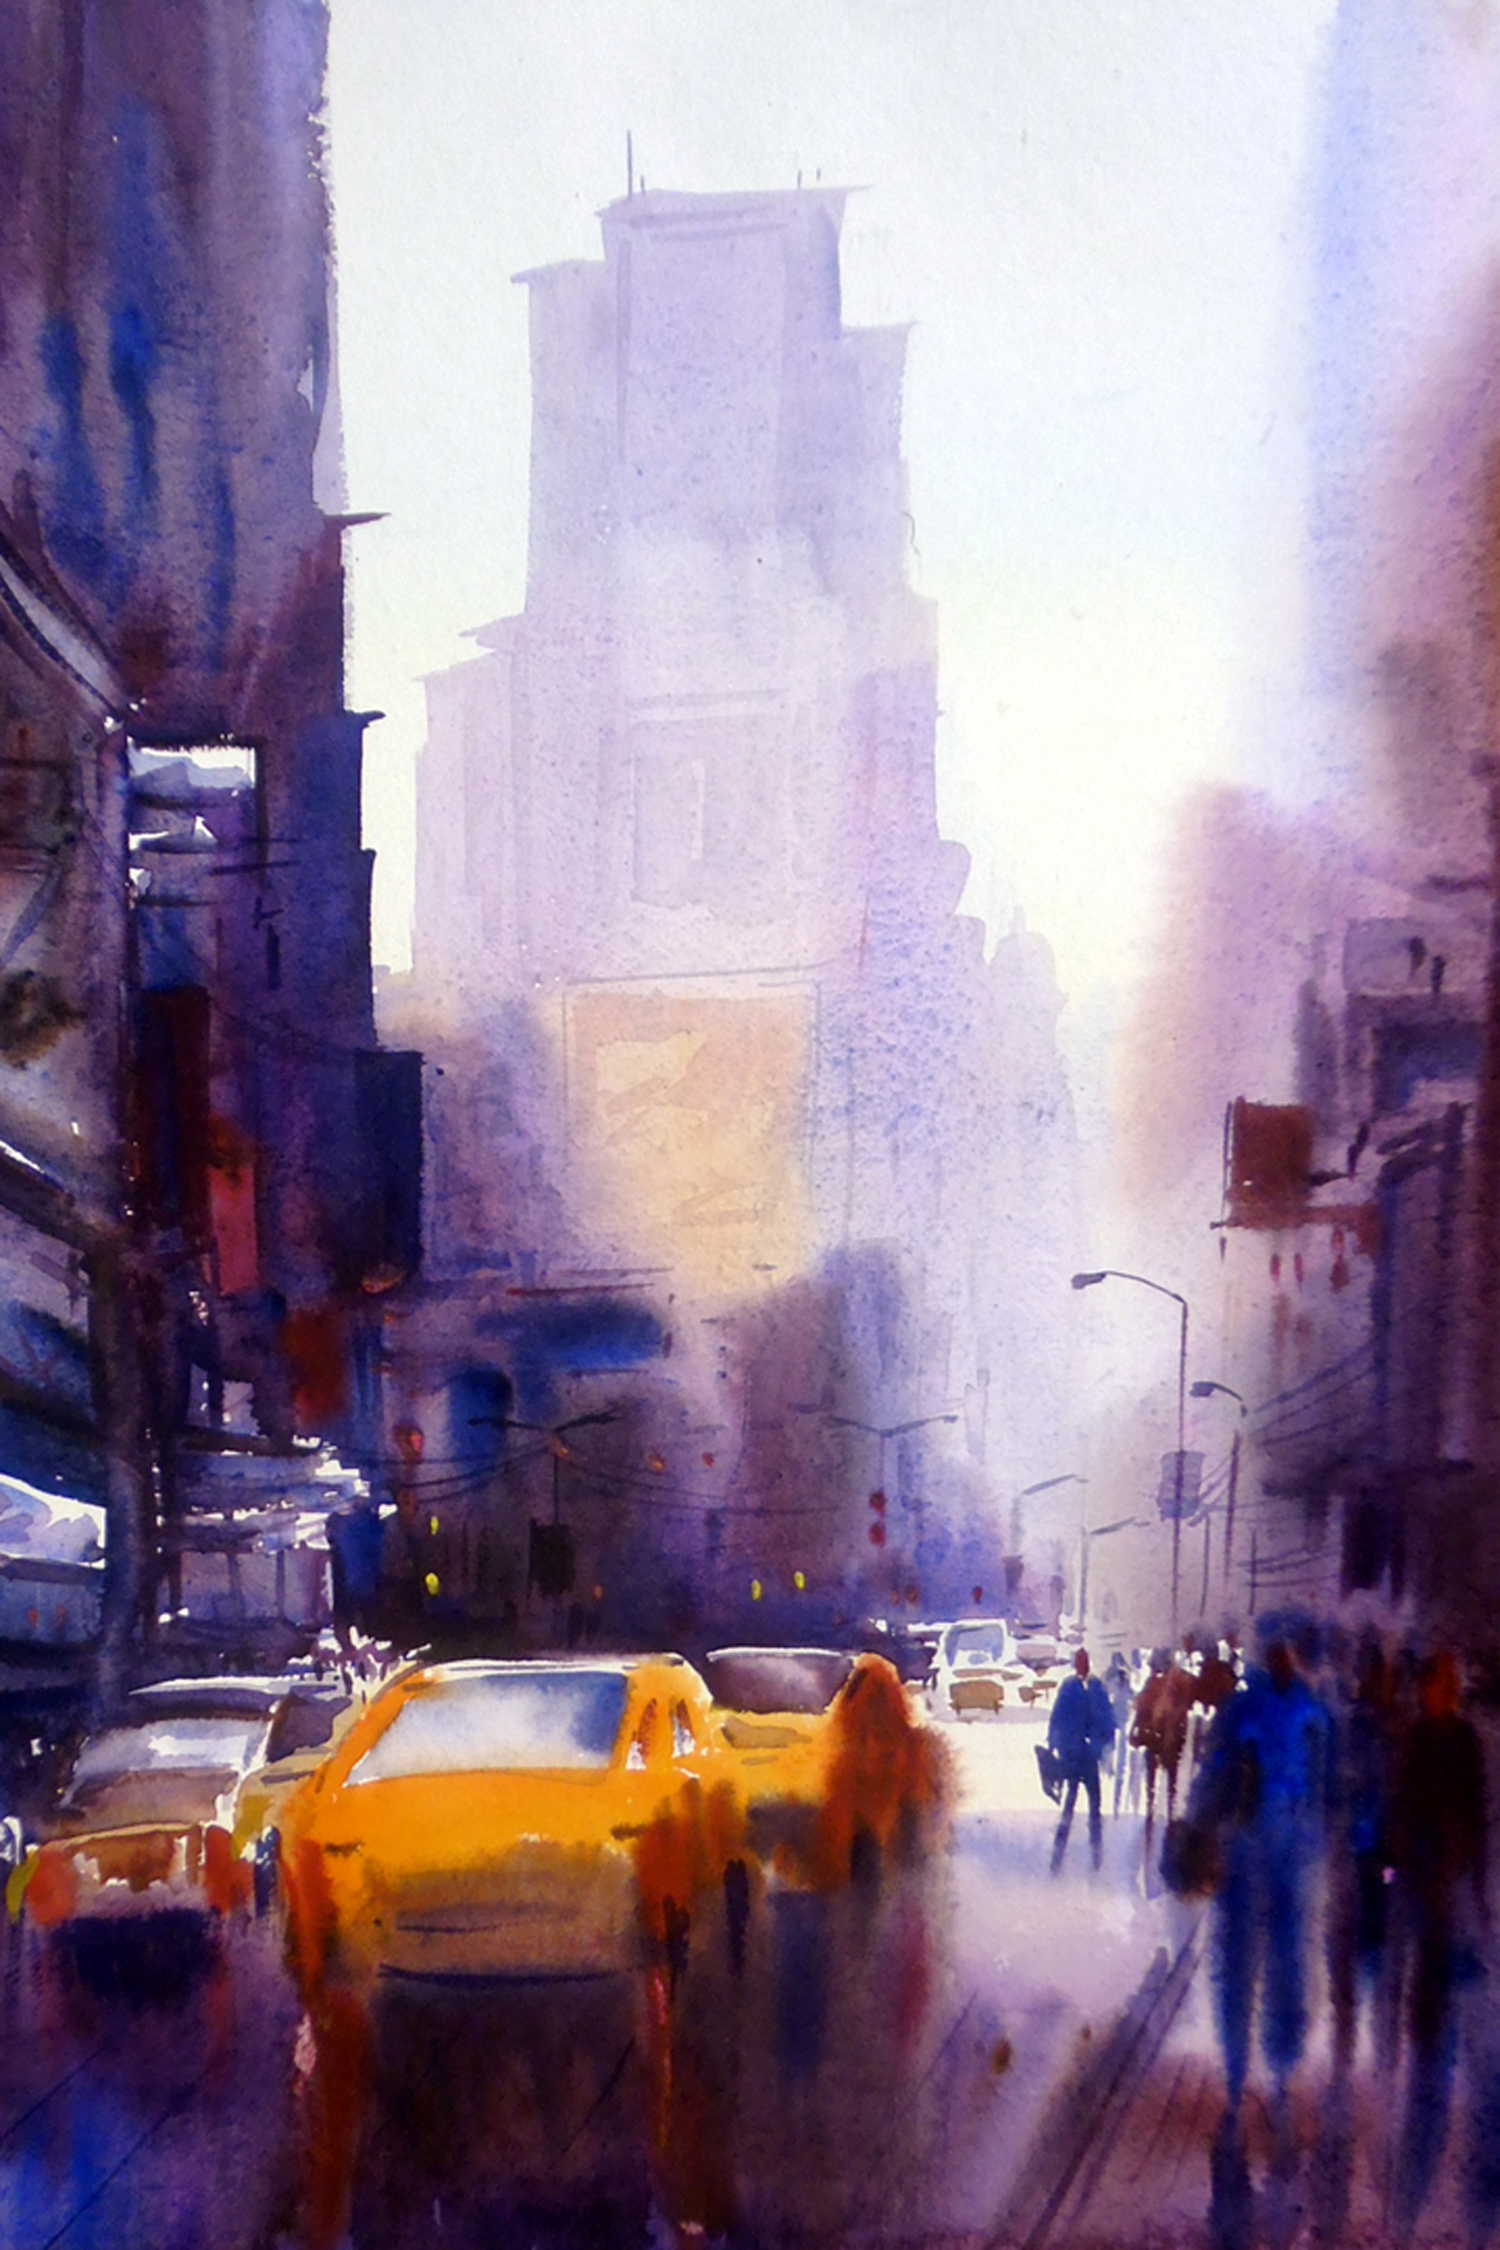 Morning City Street - Watercolor Painting 7466